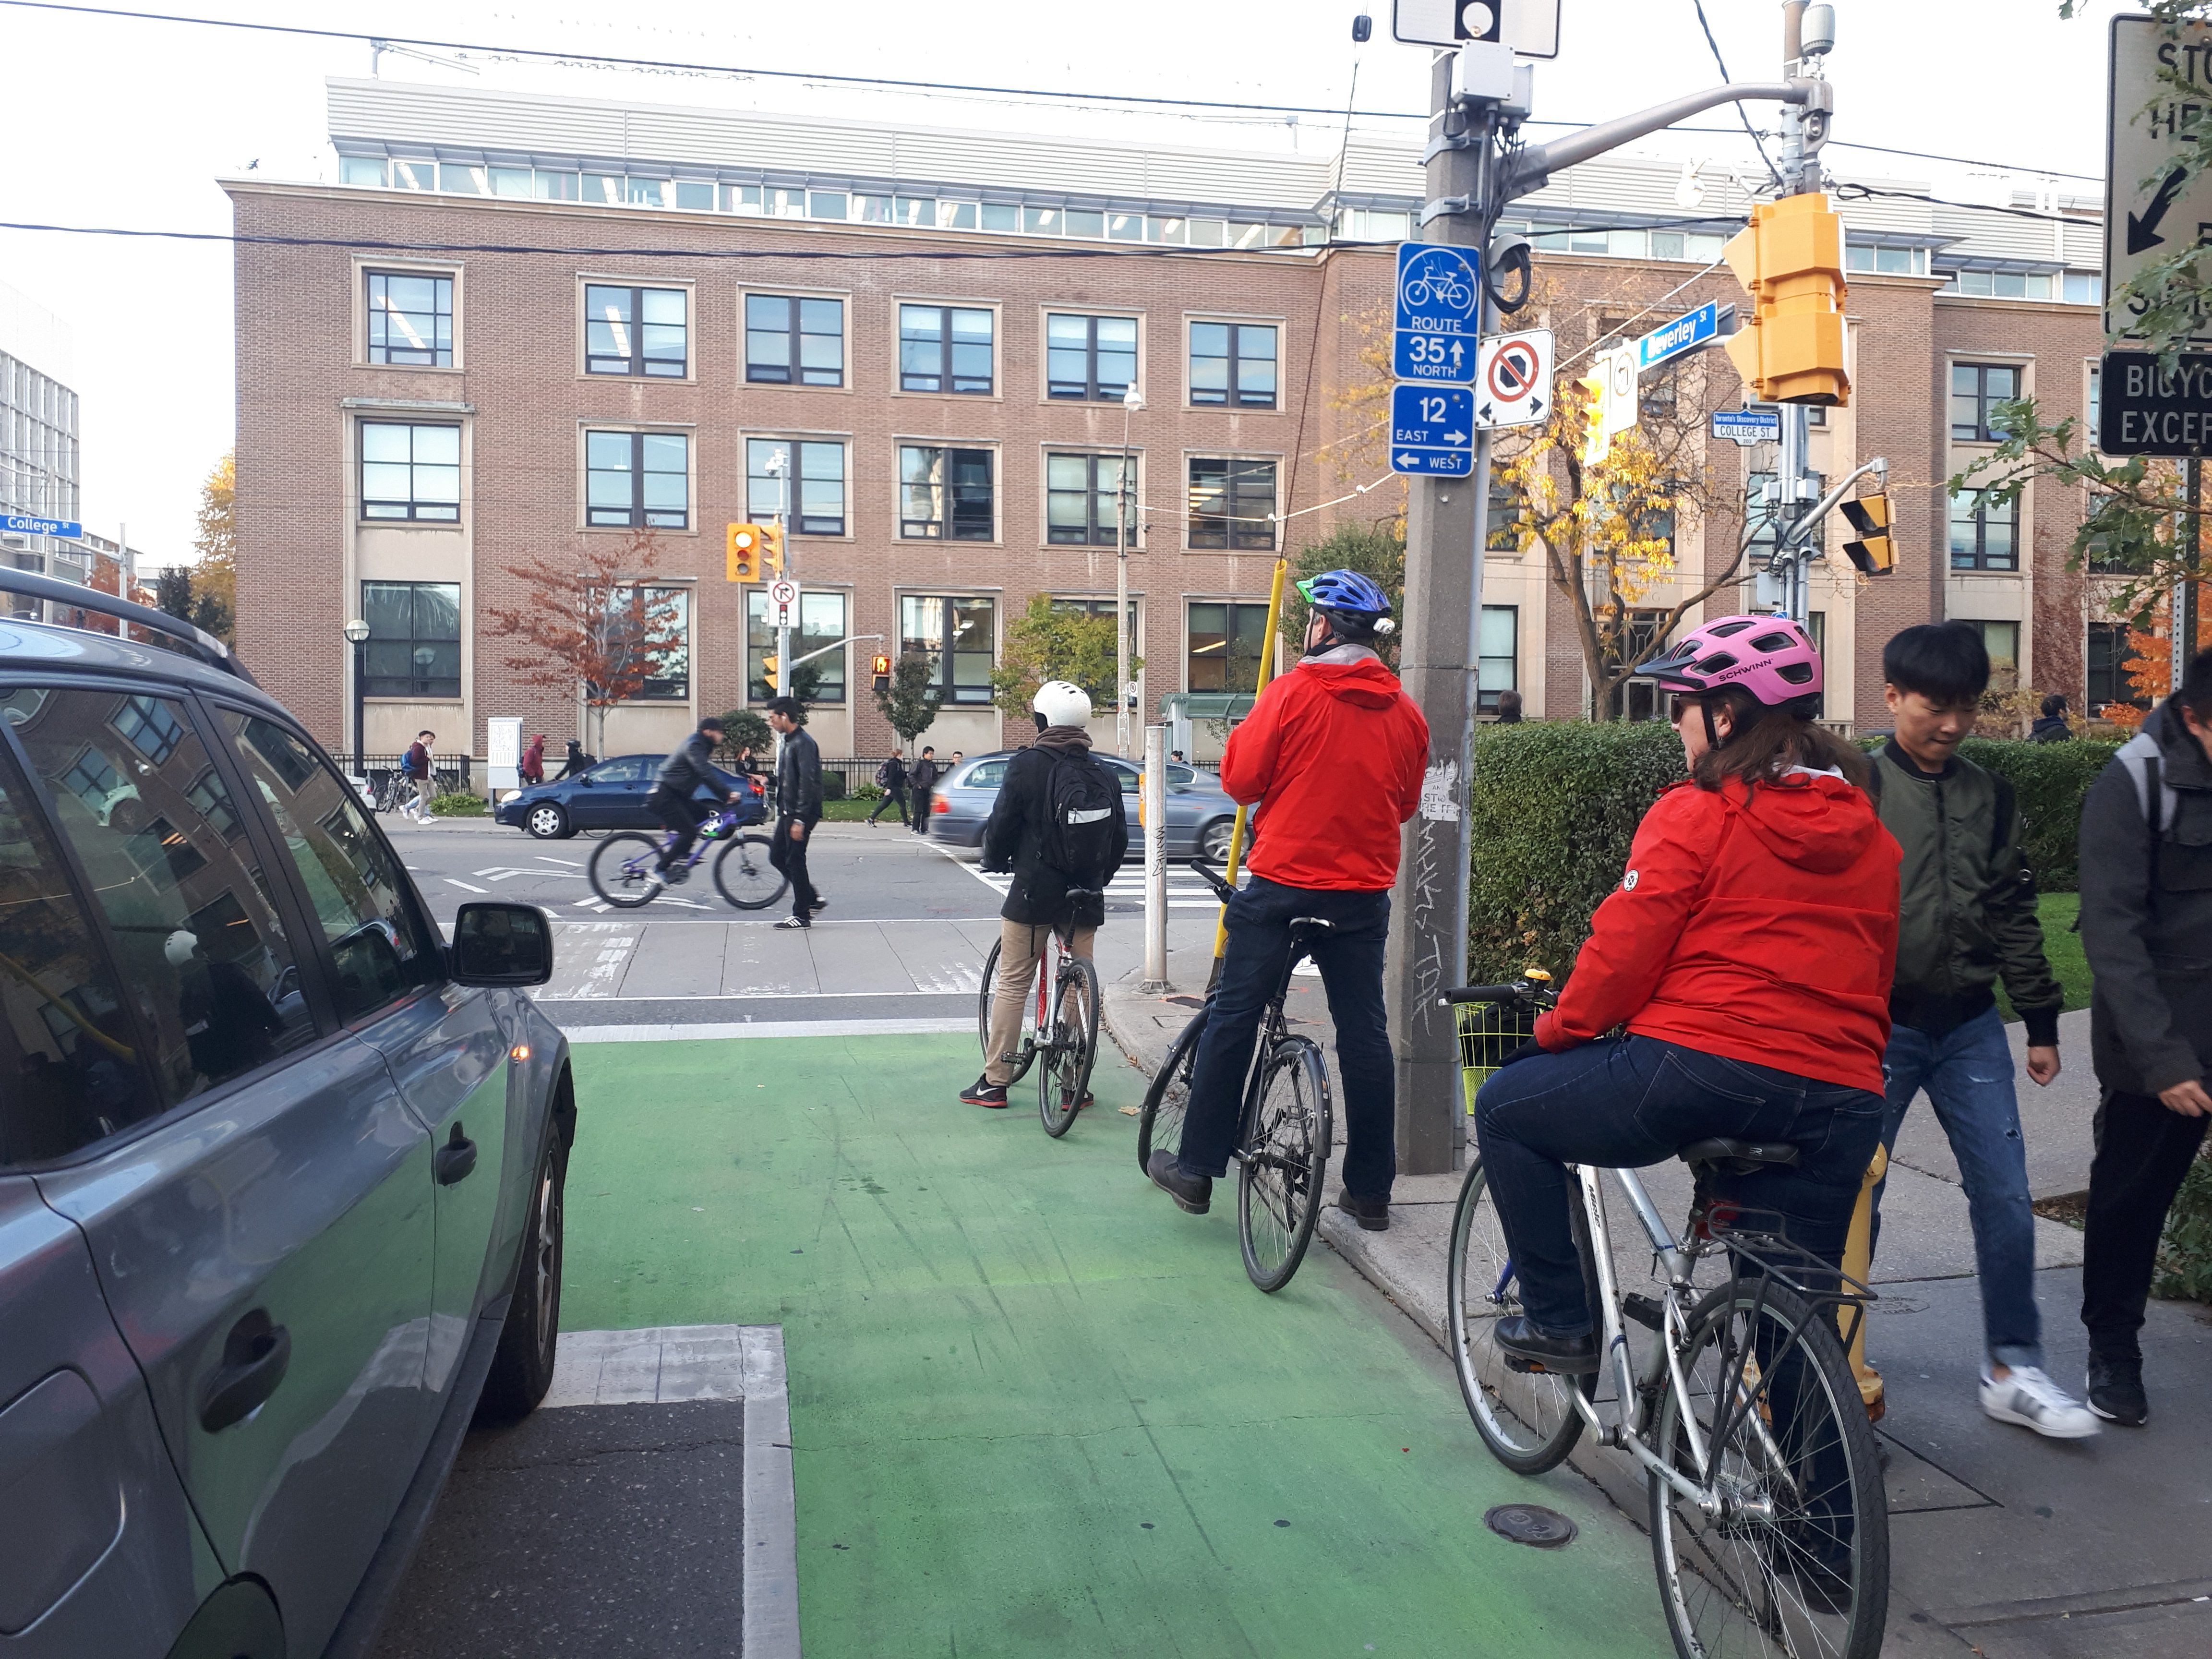 Three cyclists waiting at a light in a green painted bike box, with a car in the lane beside them.